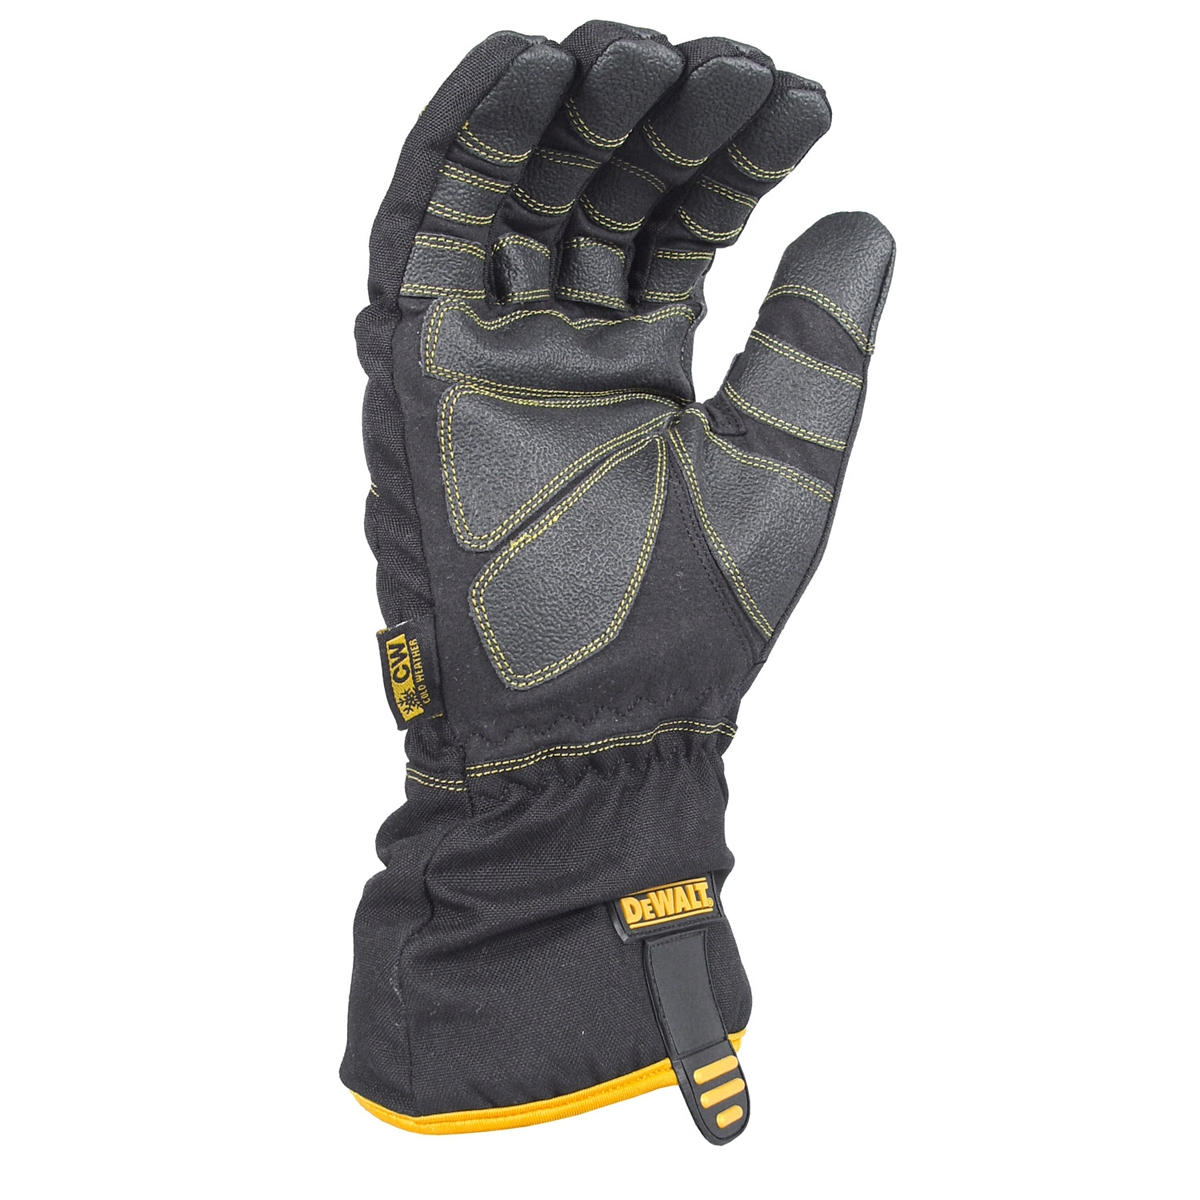 Insulated Work Gloves For Cold Weather